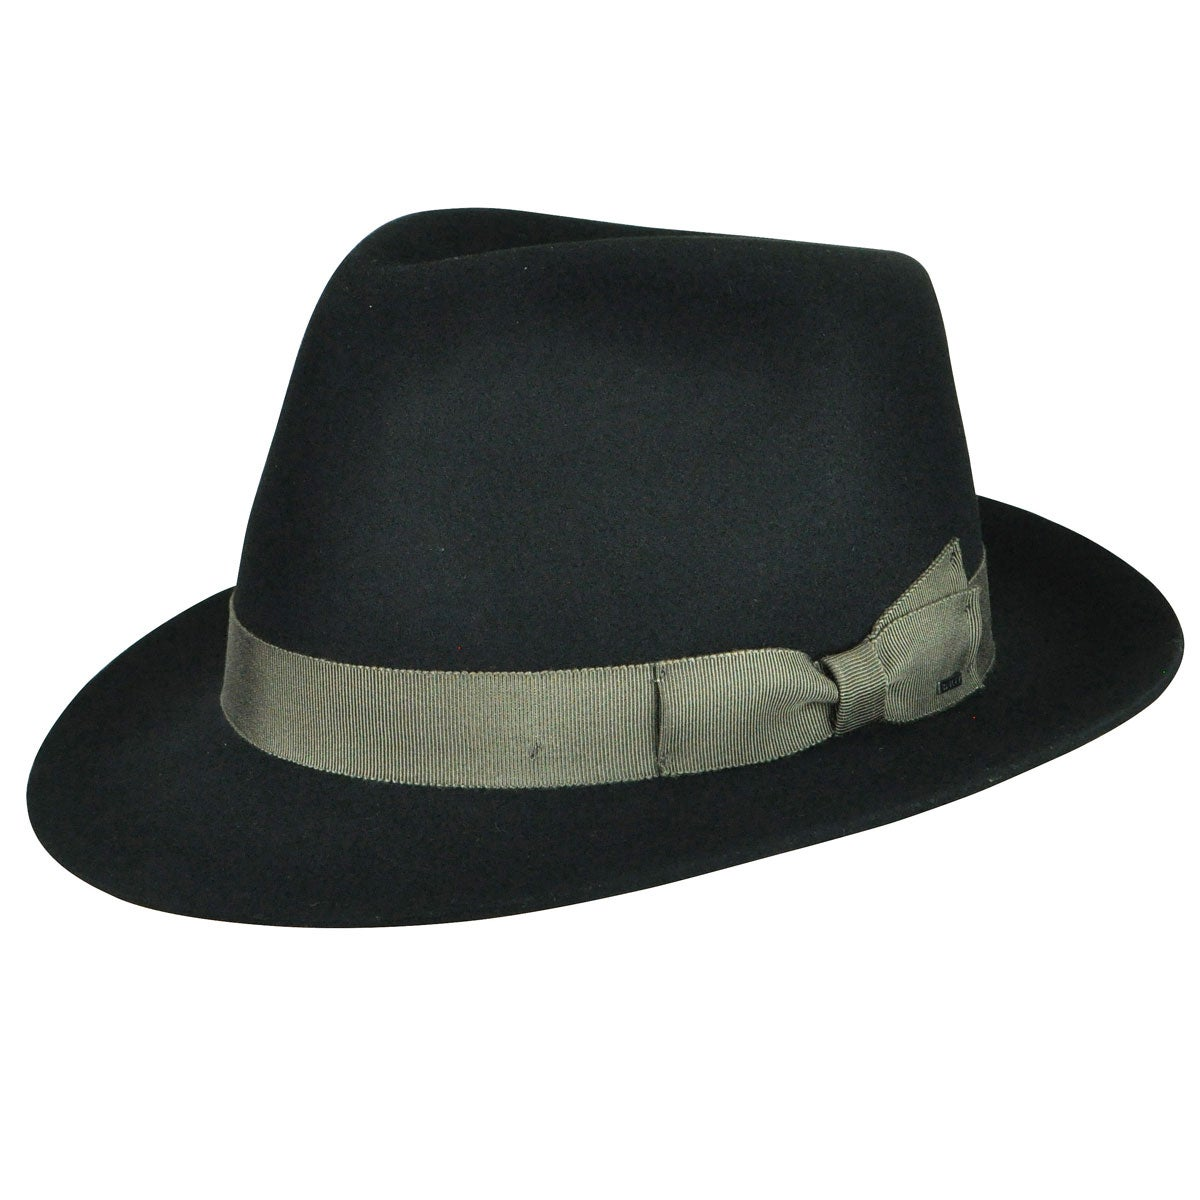 Rockabilly Men's Clothing Bertram LiteFelt reg Fedora $100.00 AT vintagedancer.com